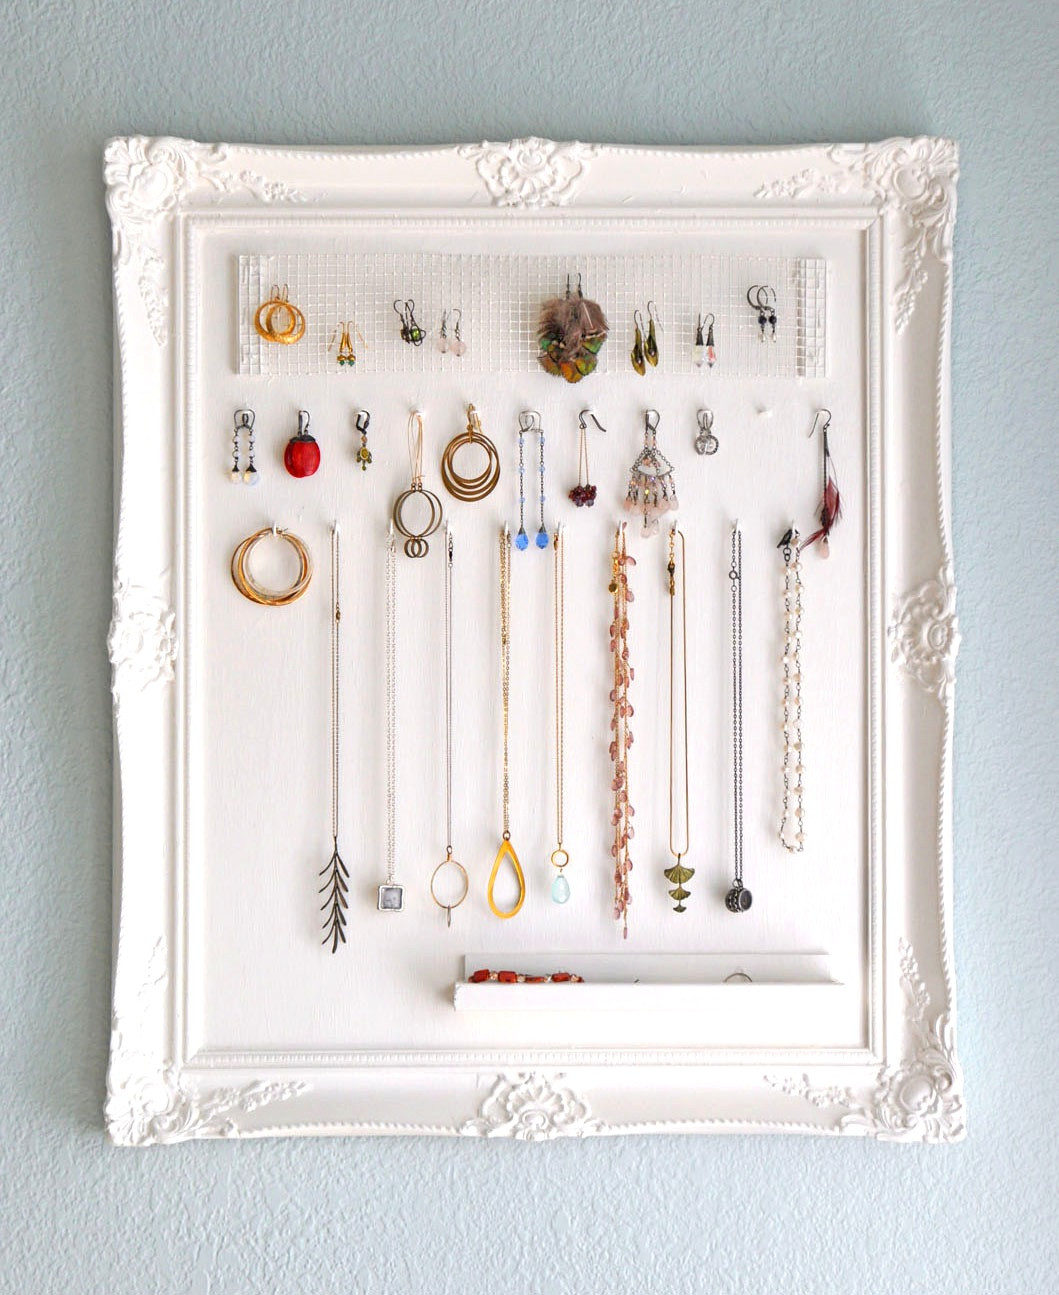 Best ideas about DIY Necklace Holder . Save or Pin 23 Jewelry Display DIYs Now.